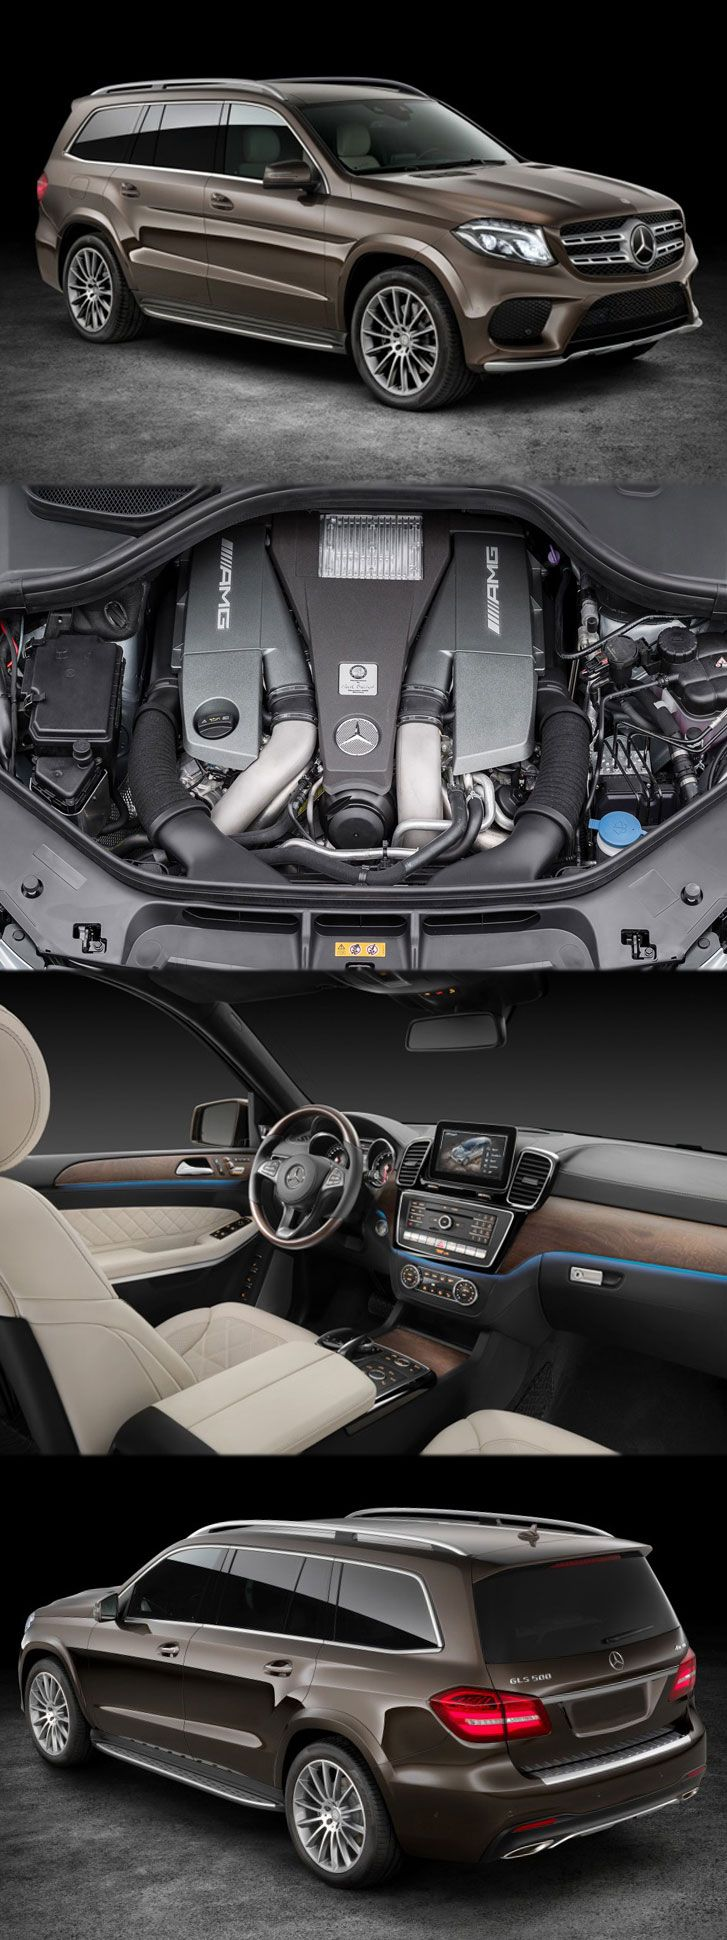 The 2017 #Mercedes #Benz #GLS With Nine-Speed #Gearbox Get more detail at: http://www.enginecompare.co.uk/blog/category/mercedes-benz/